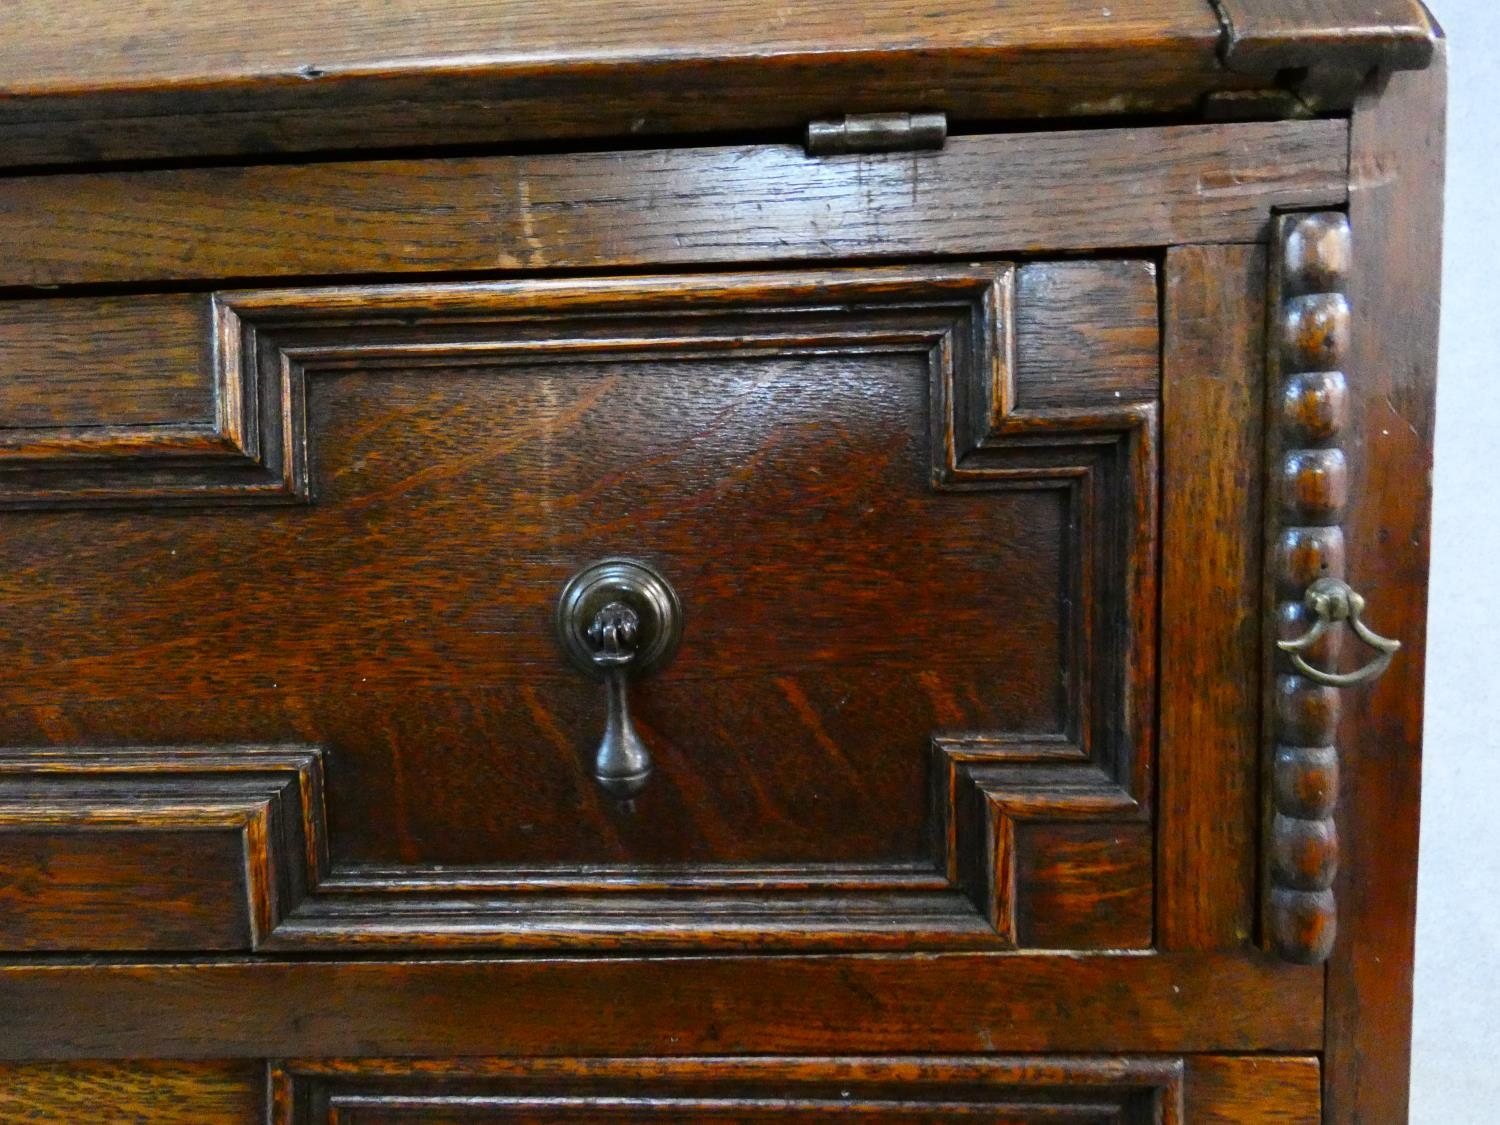 A mid century Jacobean style oak bureau with lozenge inset panels and fall front revealing fitted - Image 8 of 26